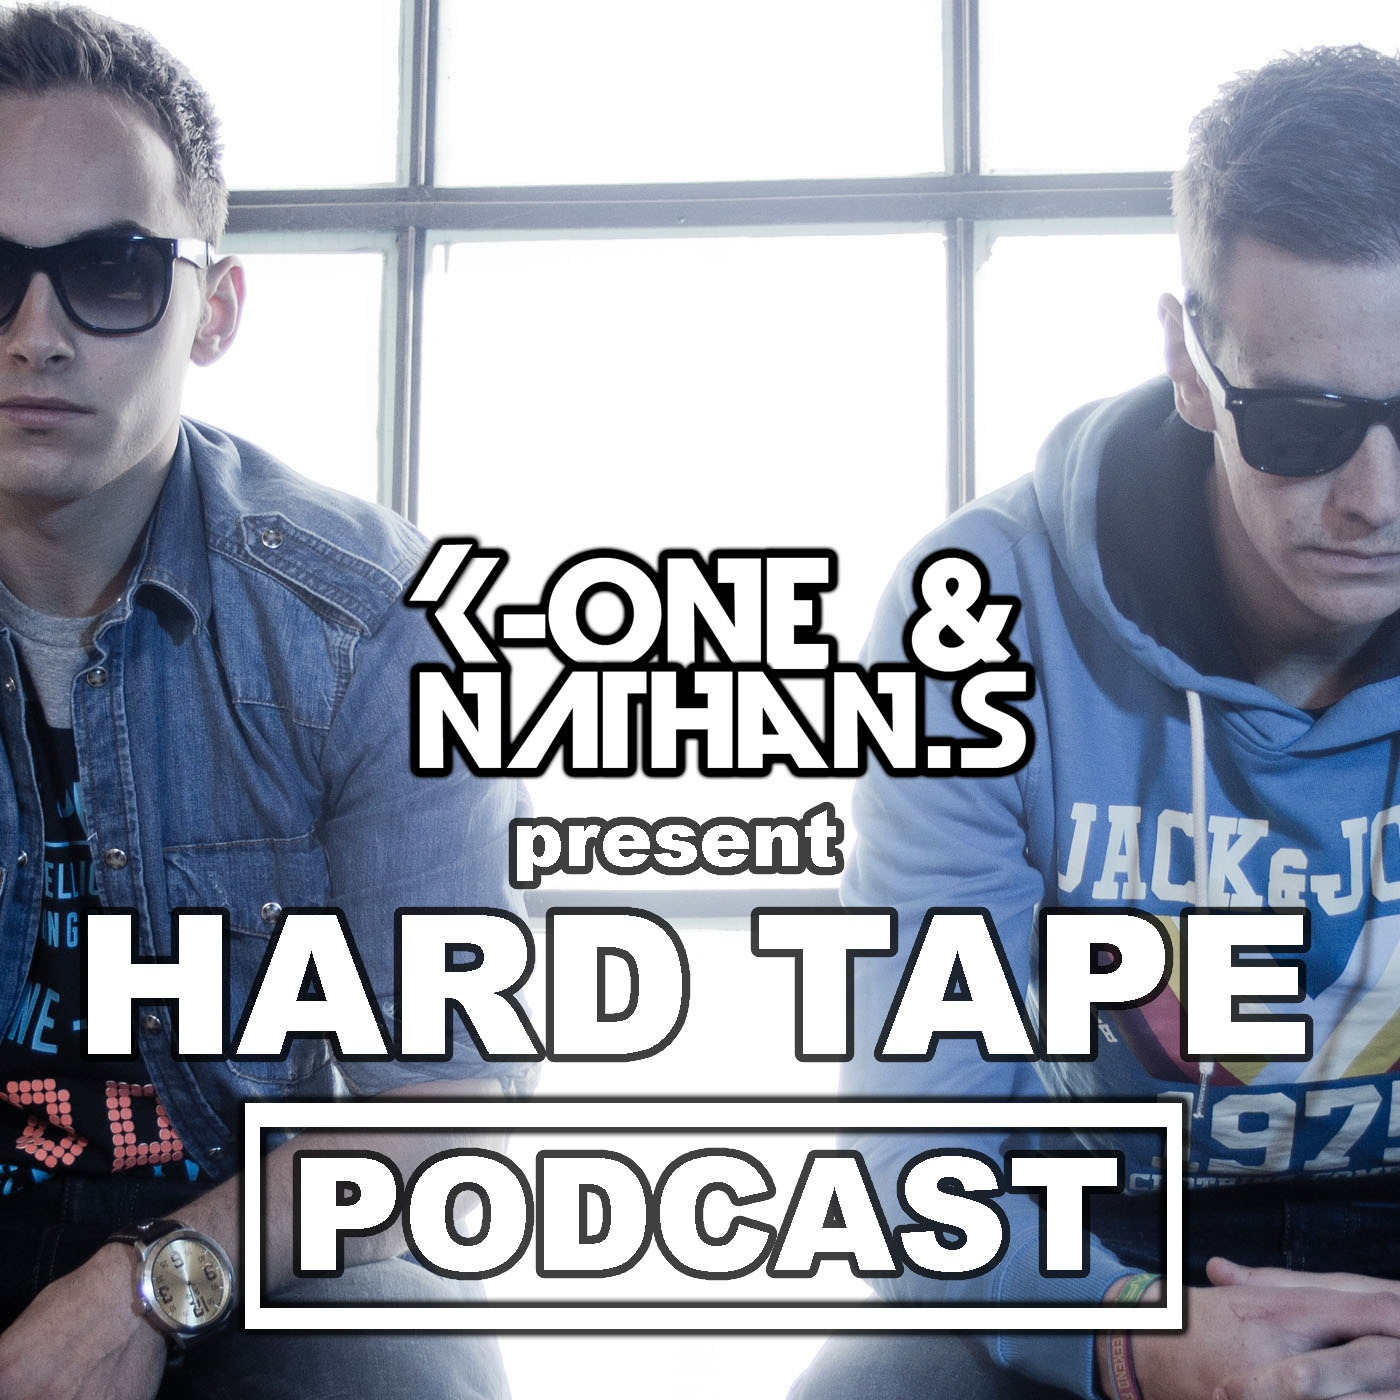 K-one & Nathan.S' Podcast